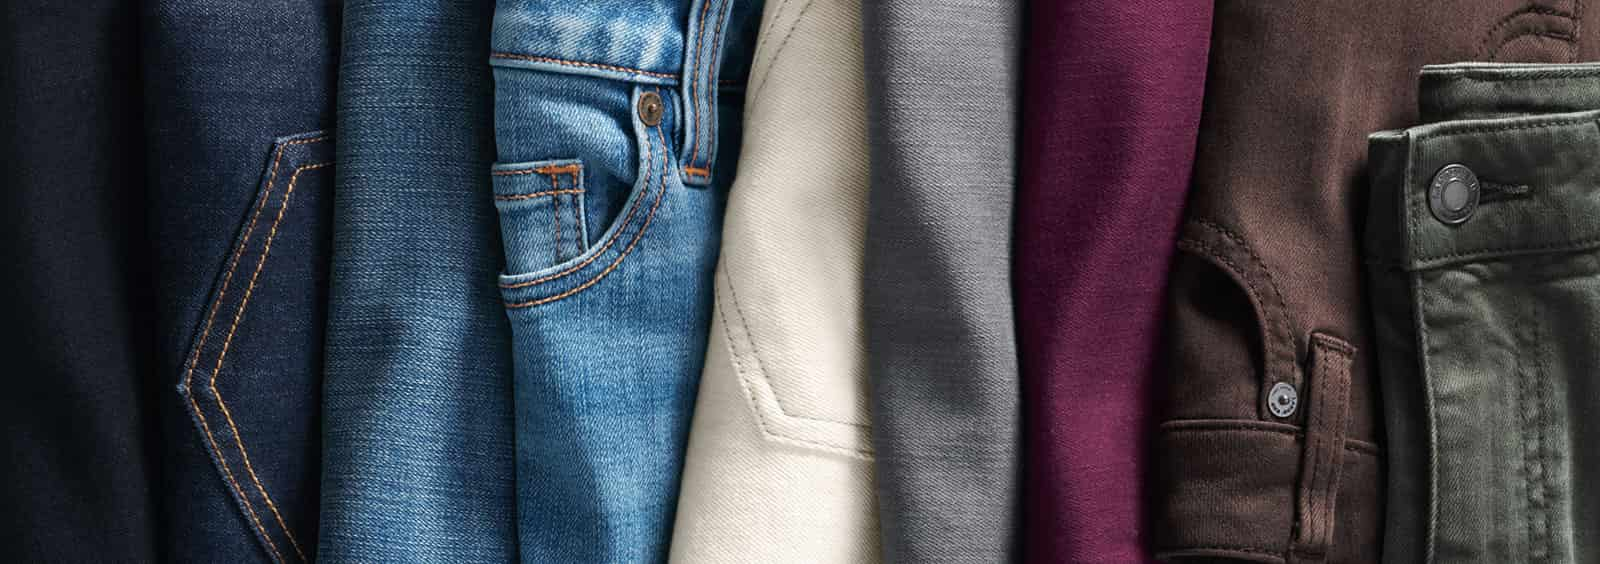 Best Women's Jean Outfits for Work